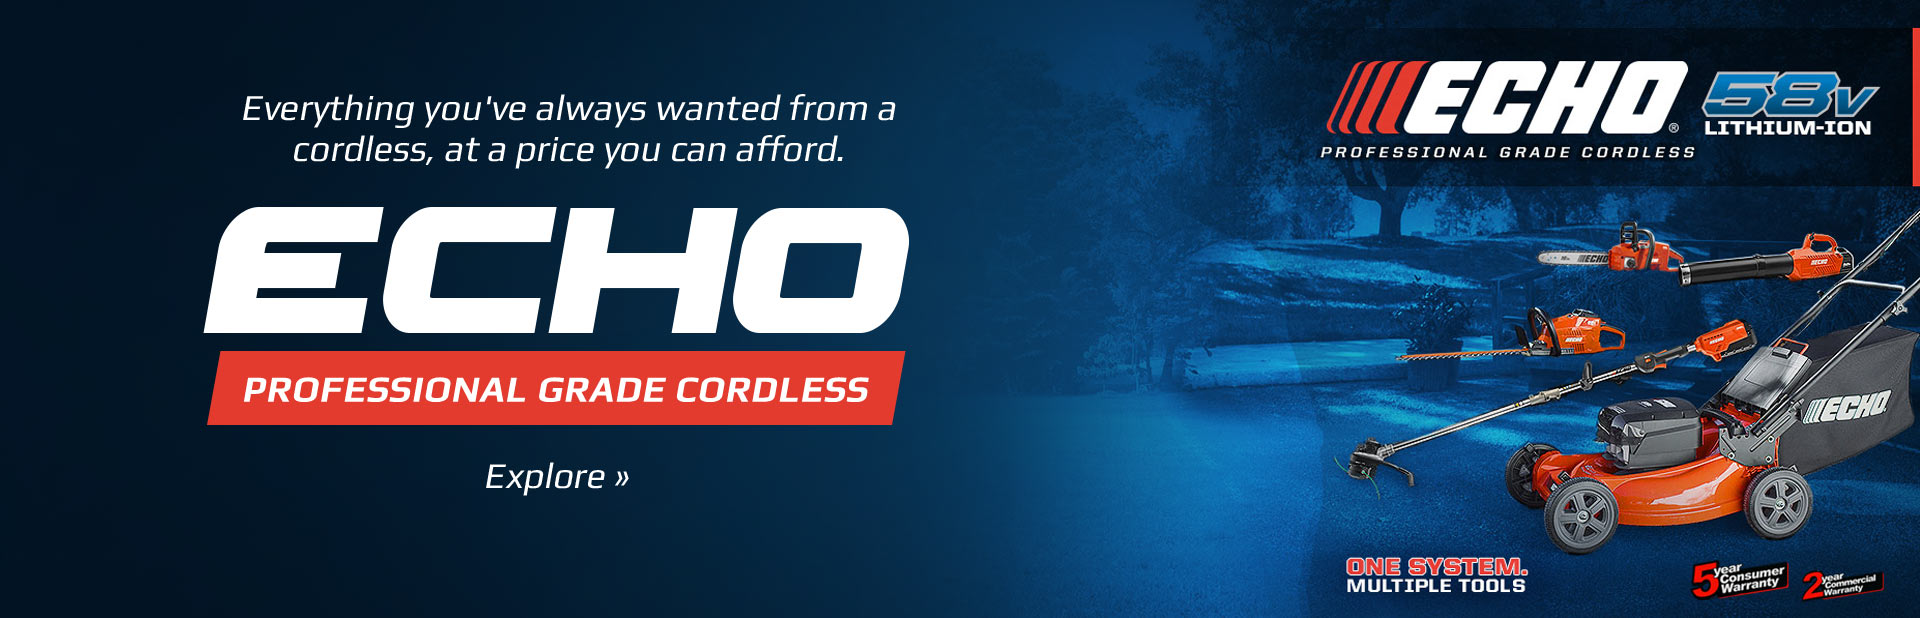 ECHO Professional Grade Cordless: Everything you've always wanted from a cordless, at a price you can afford.